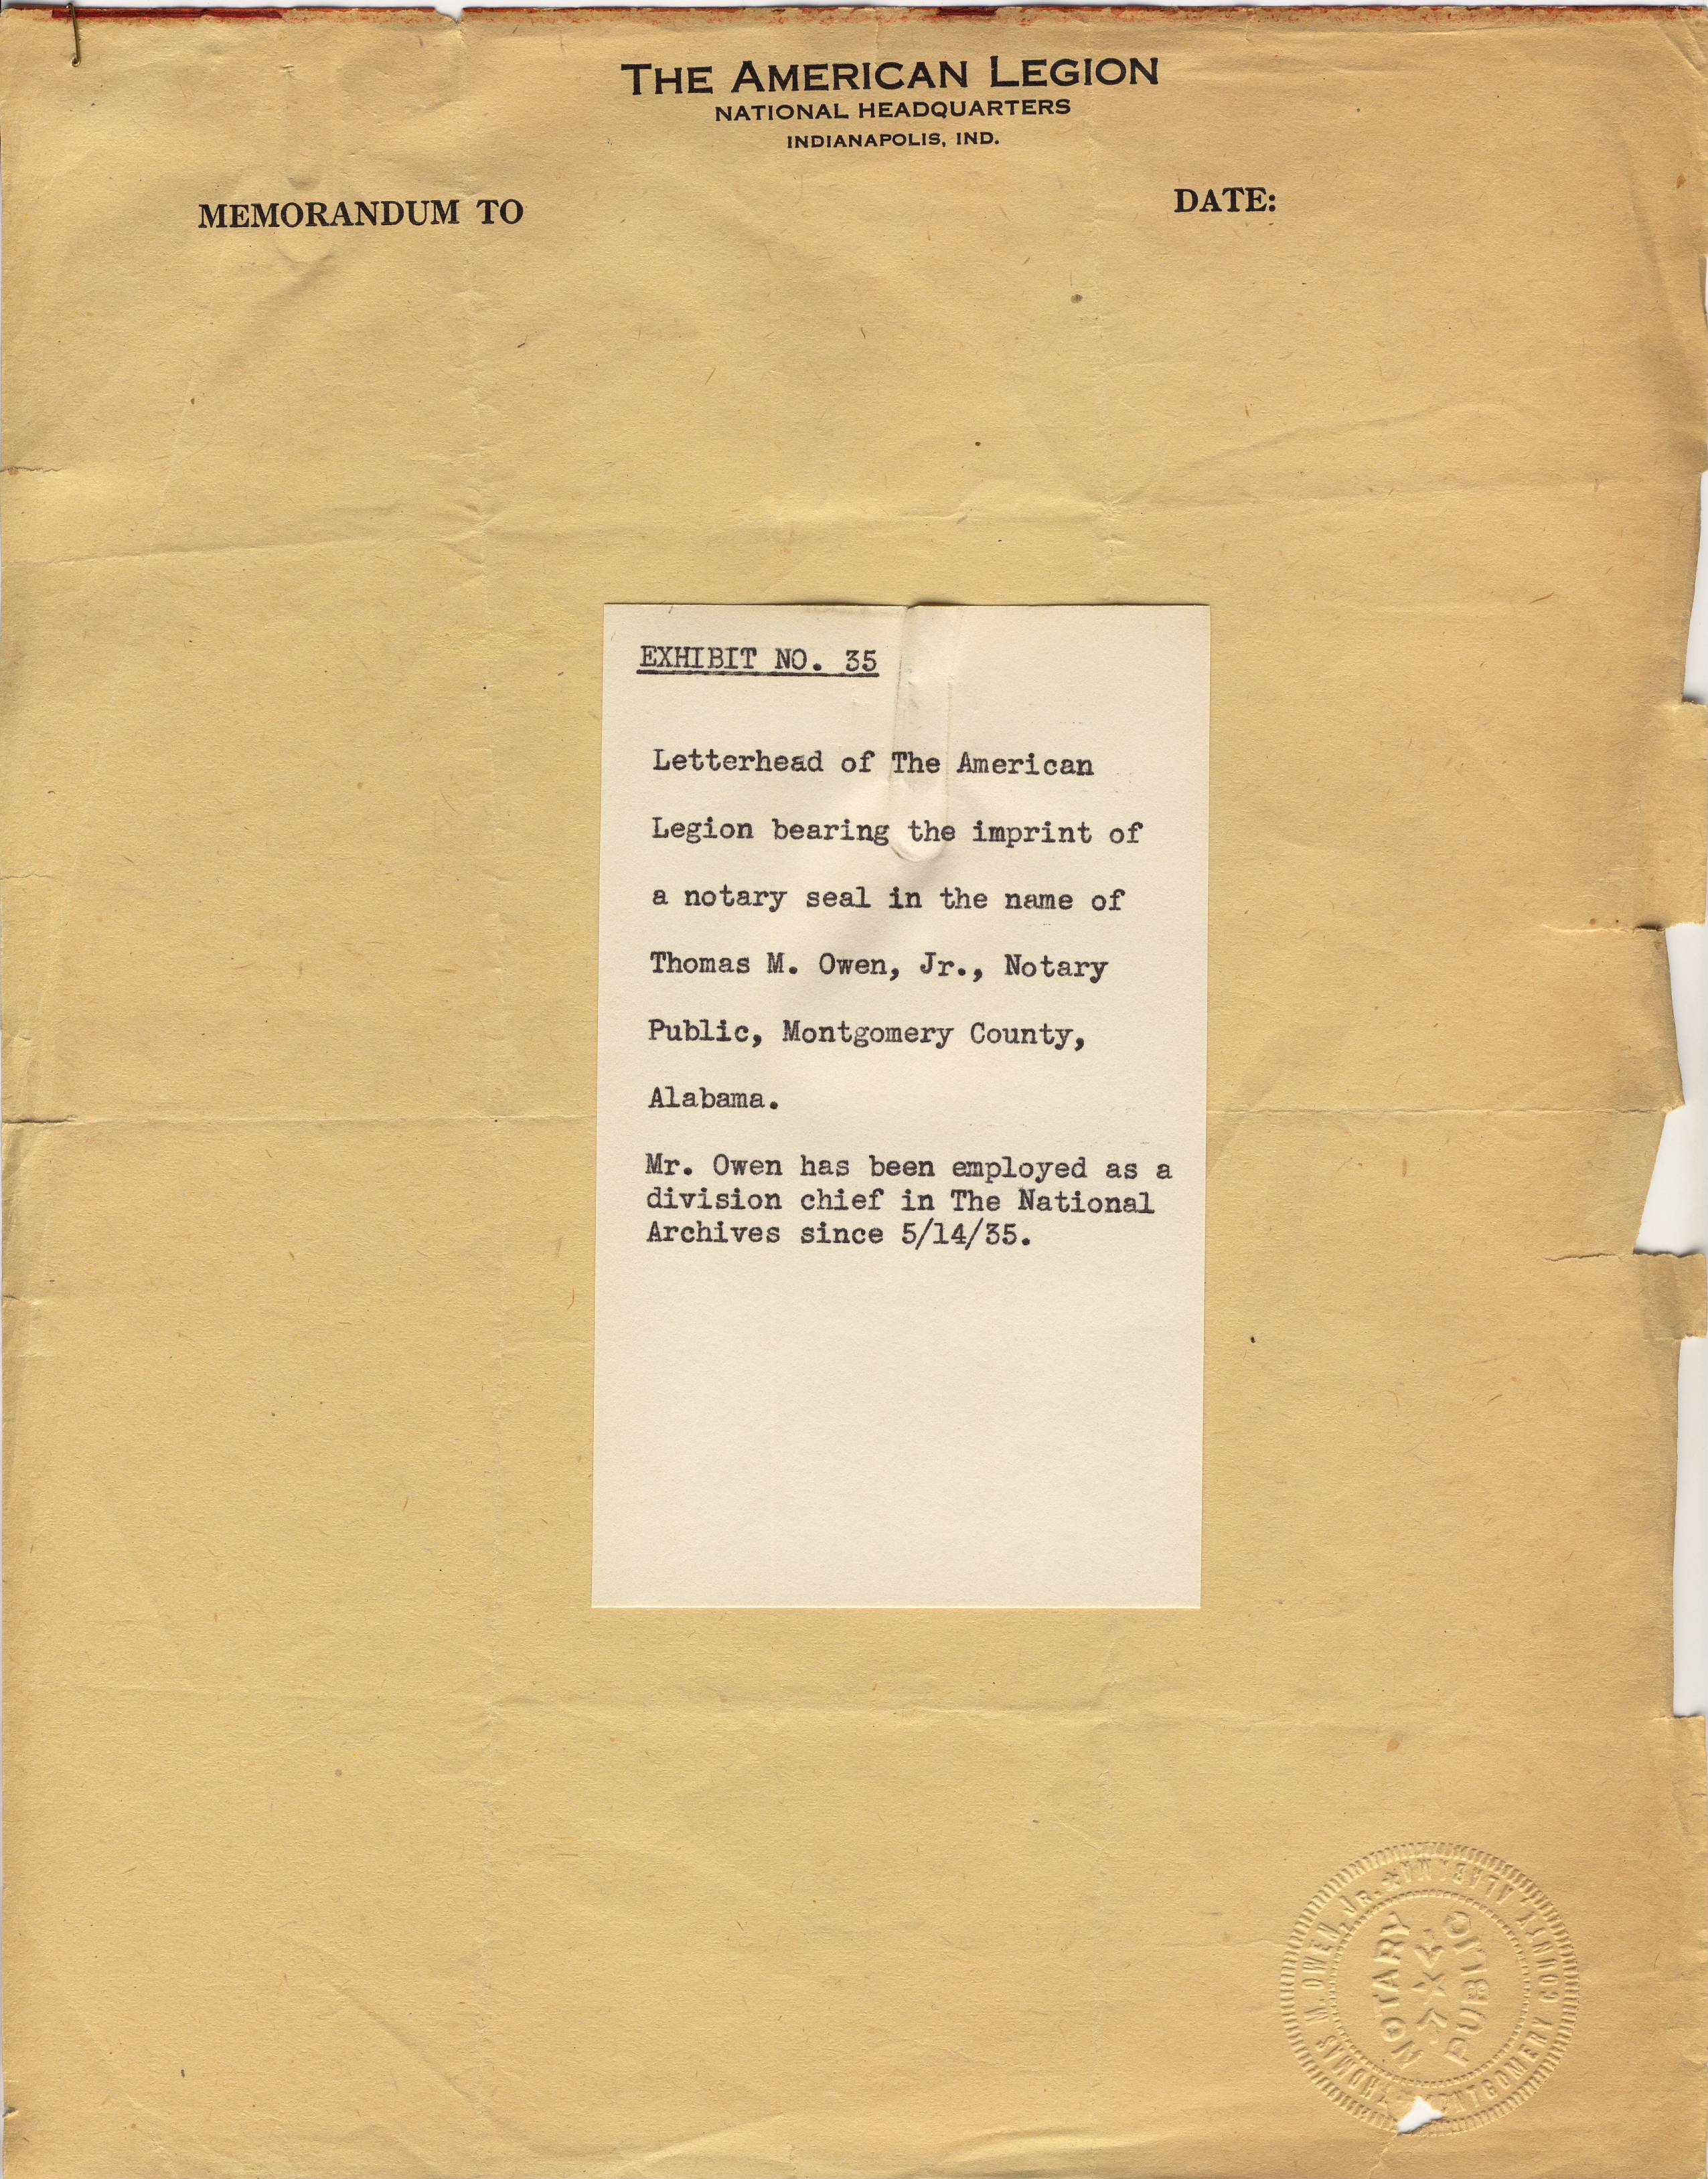 American Legion Letterhead with Notary Seal, 1938 - RG 64, A1 2A, file Frank T. VanHook, folder no. 3, box 3.jpg